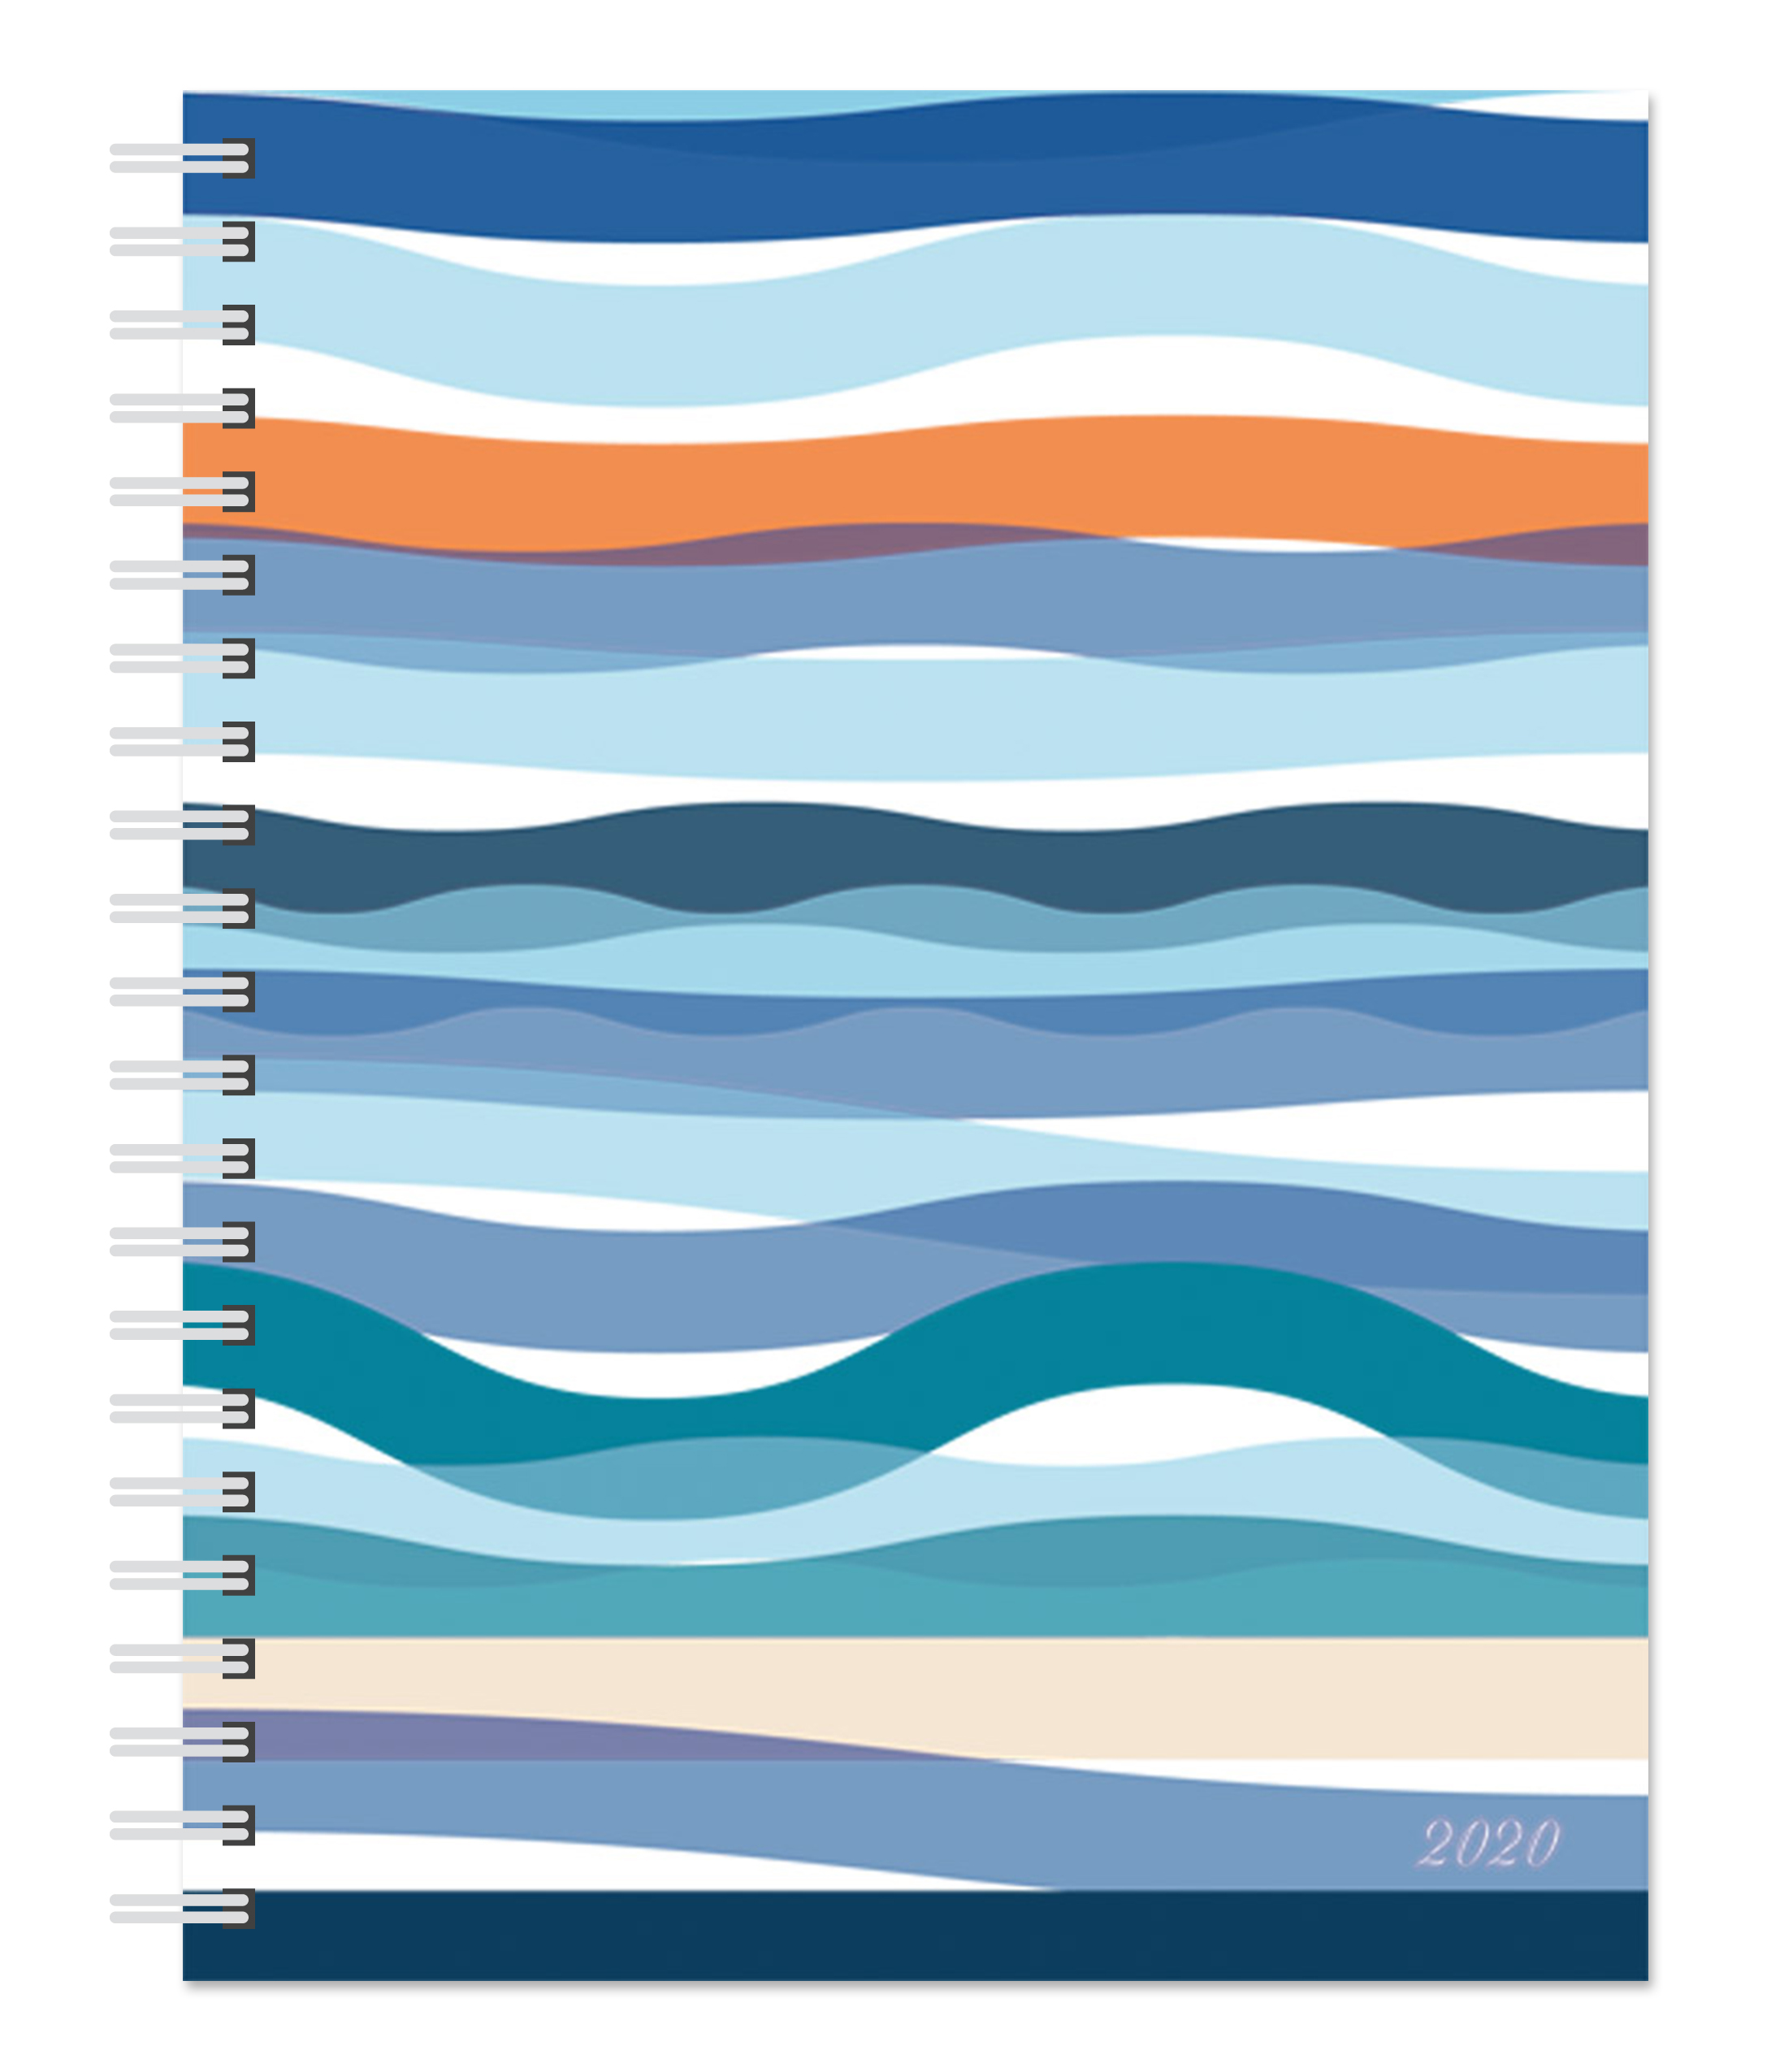 Seaside Currents 2020 6 x 7.75 Inch Weekly Desk Planner by Plato, Planning Stationery